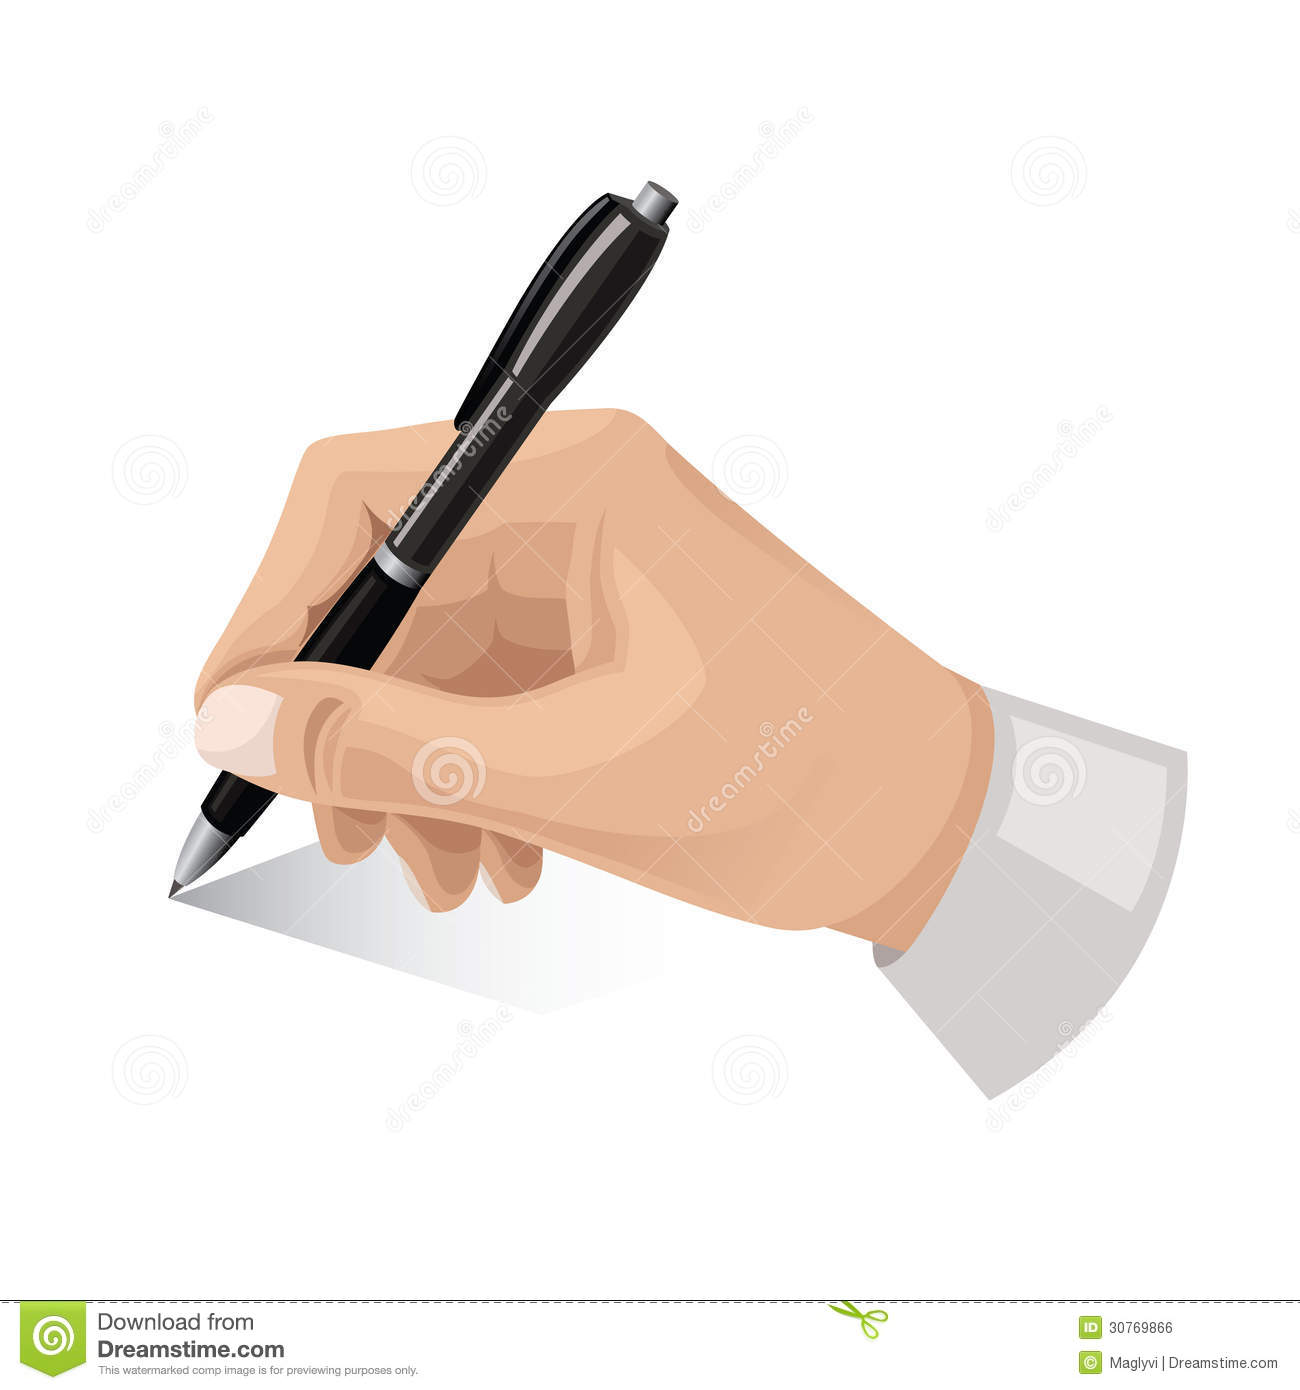 Pen in hand clipart jpg black and white Hand With Pen Royalty Free Stock Image - I #37367 ... jpg black and white